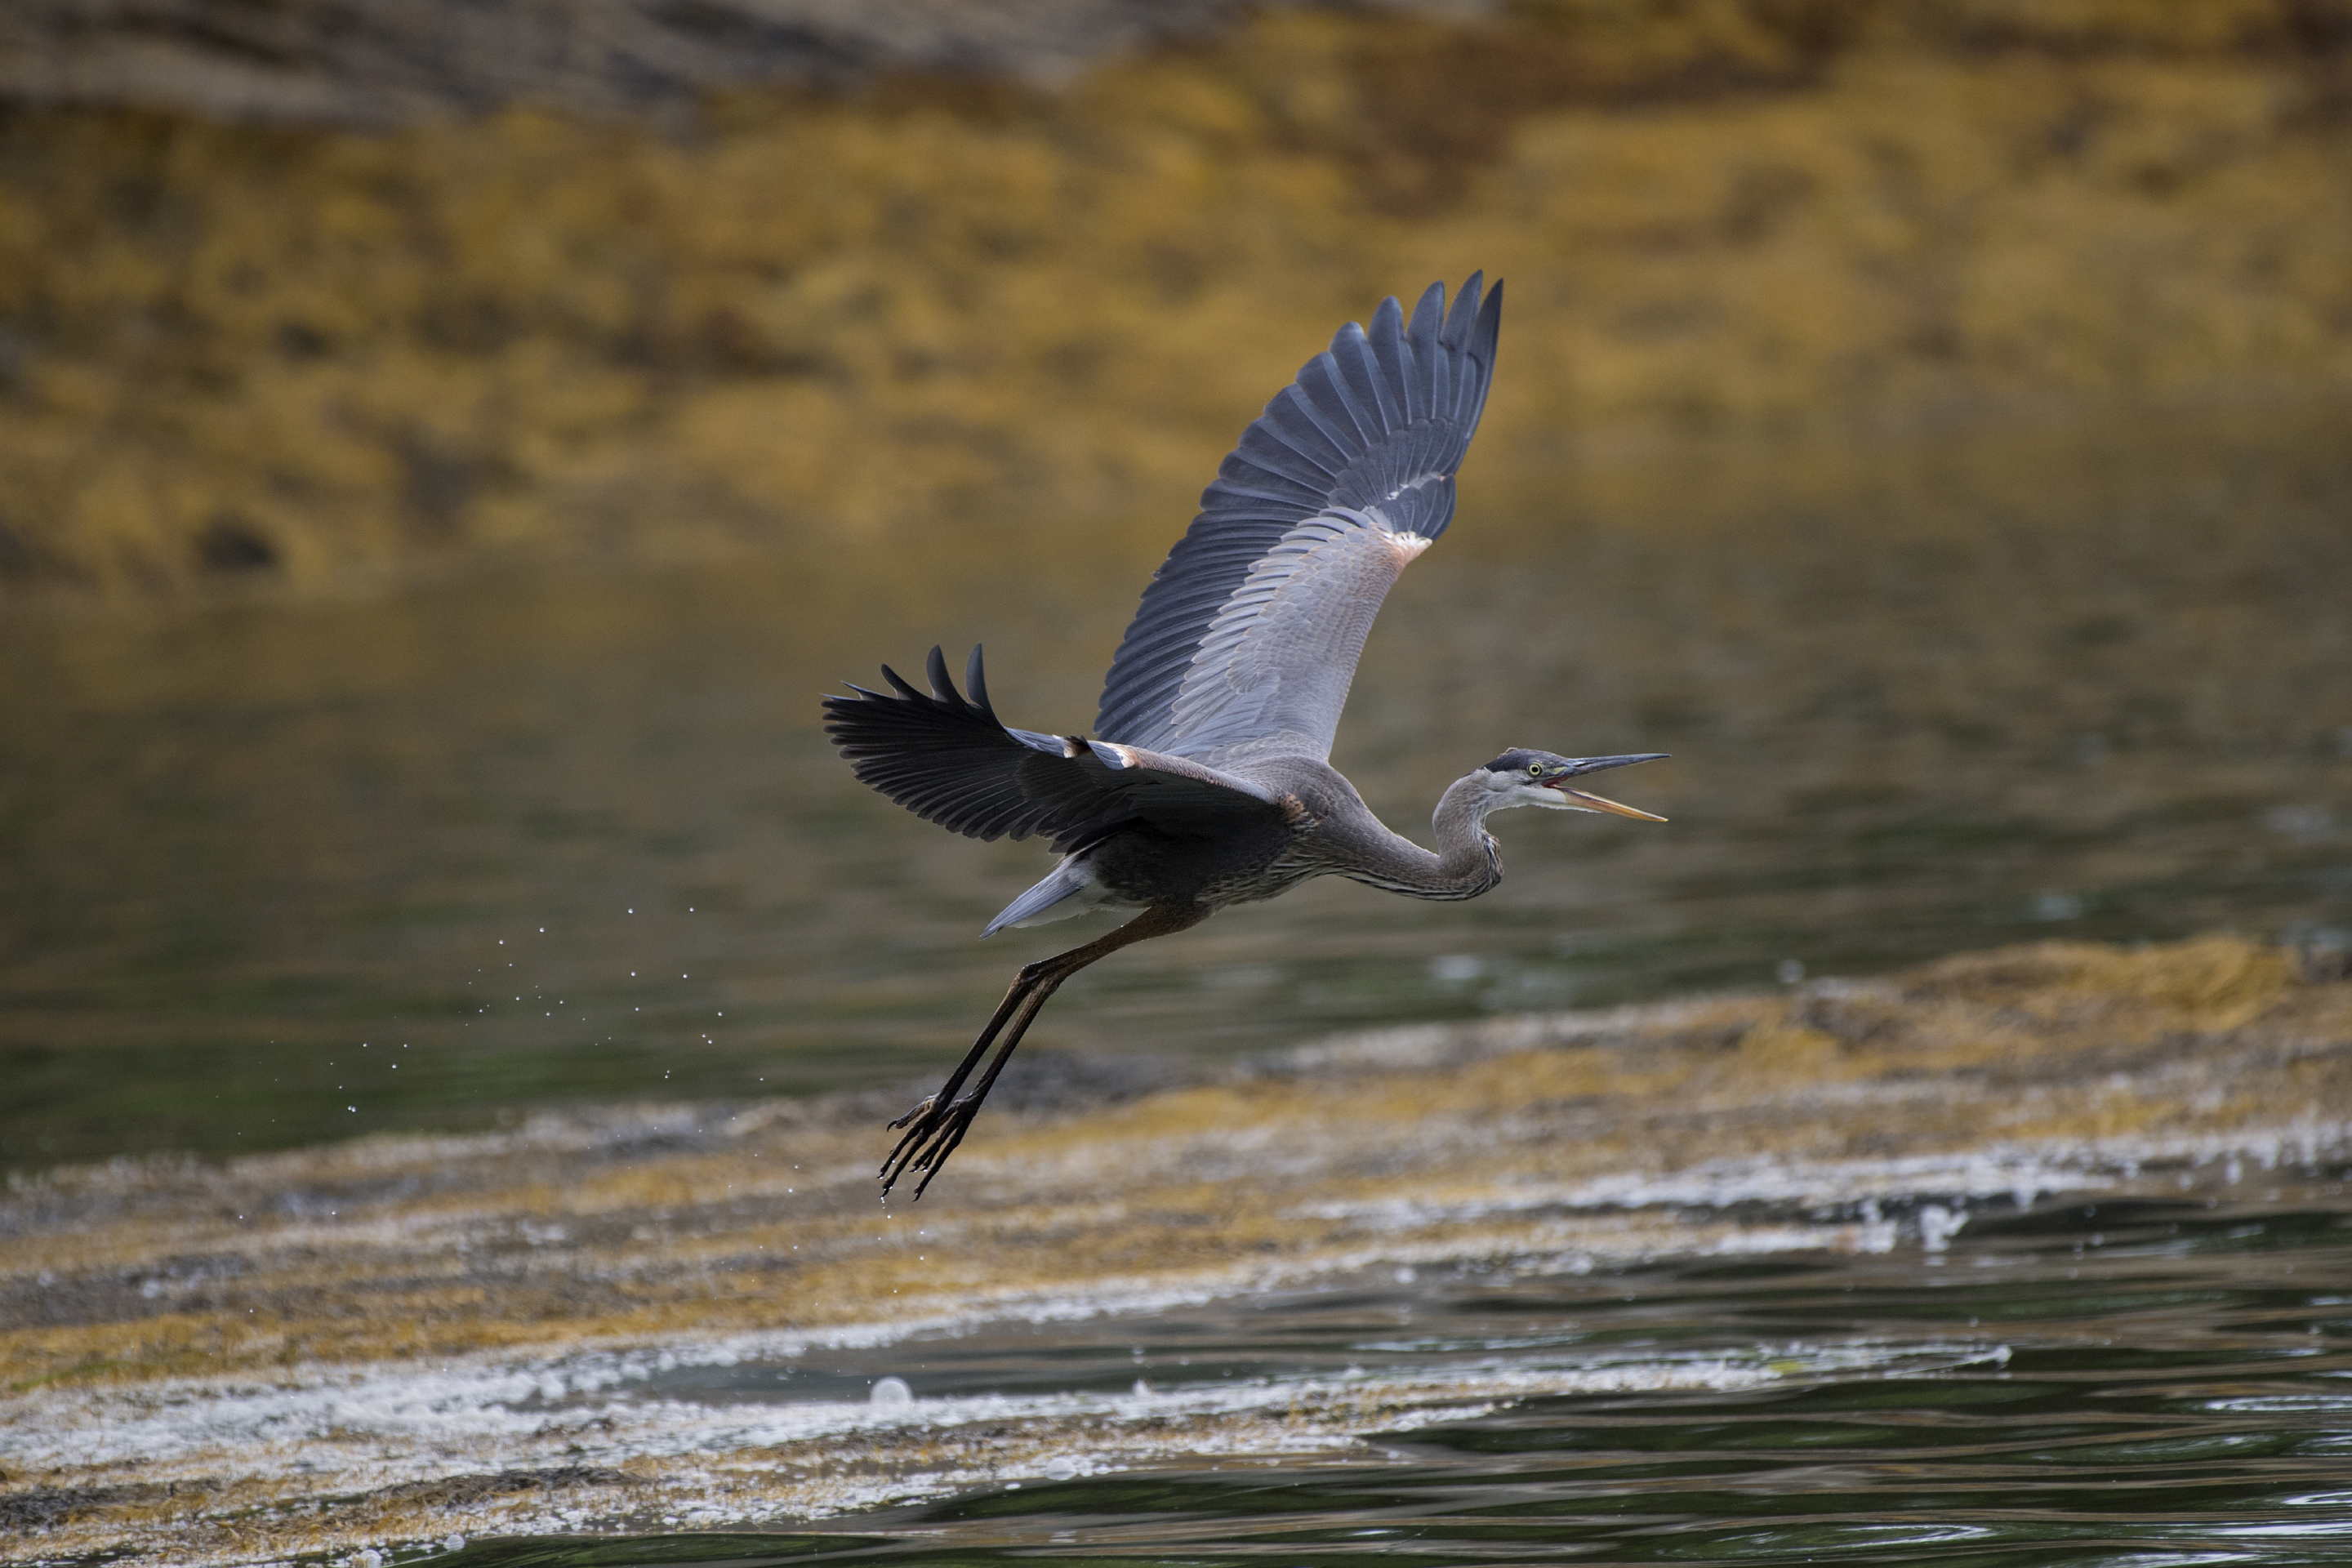 Fishing Expedition – Great Blue Heron